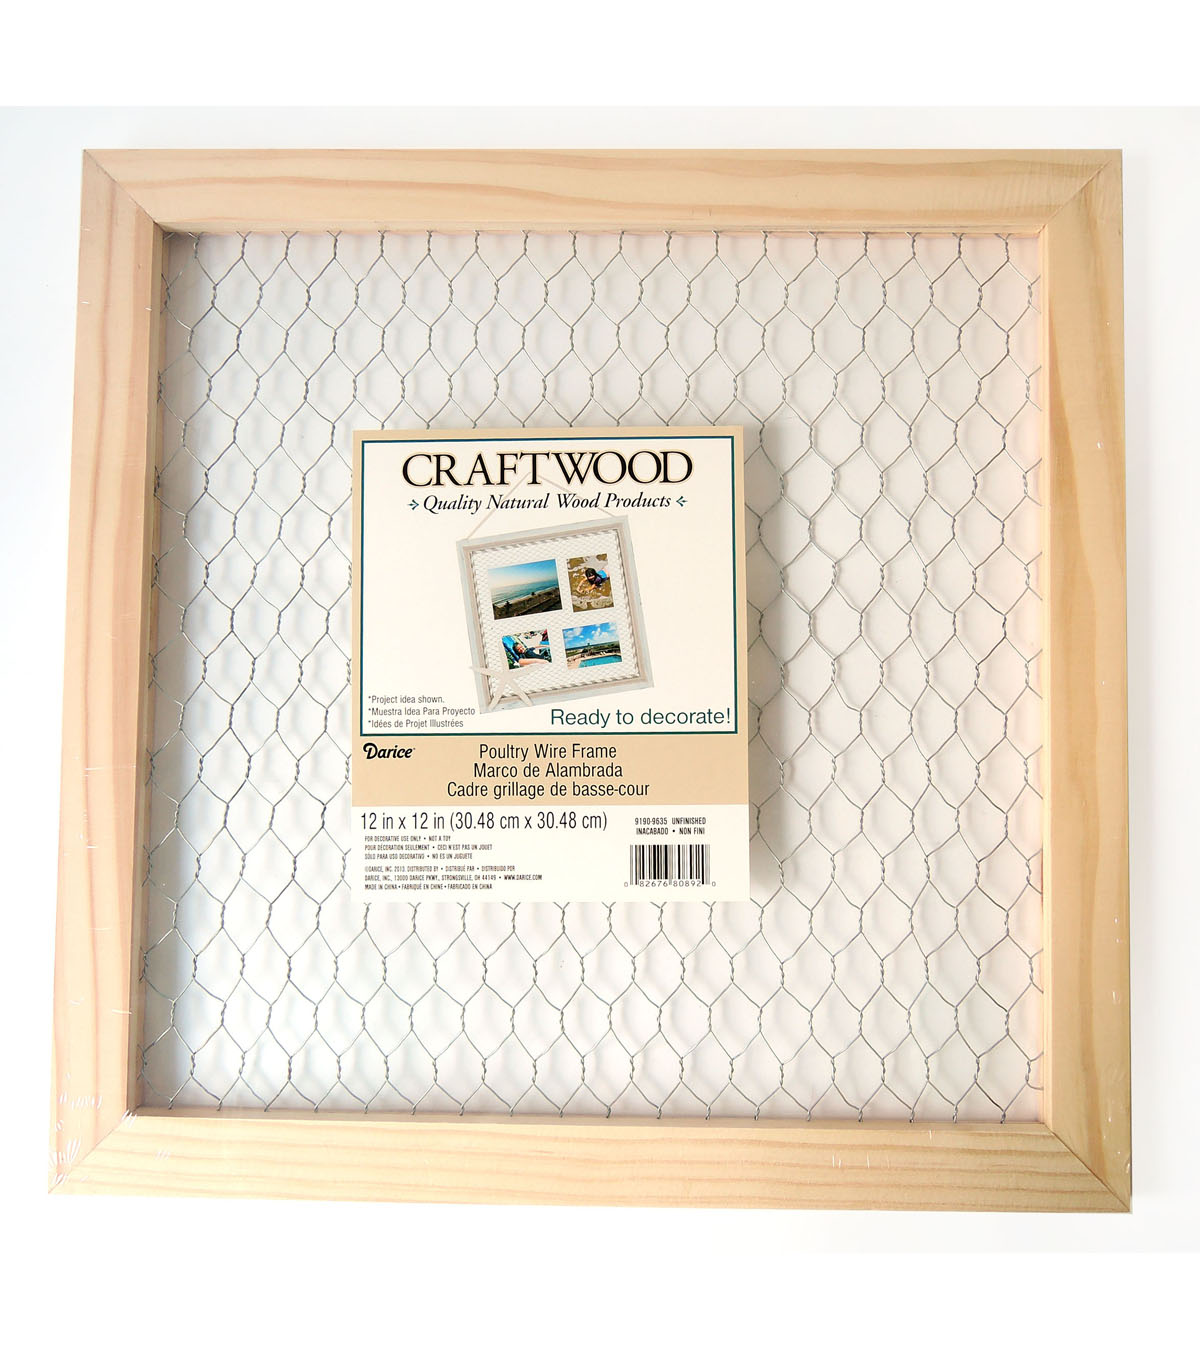 Darice Craftwood 12\'\'x12\'\' Unfinished Chicken Wire Square Frame | JOANN